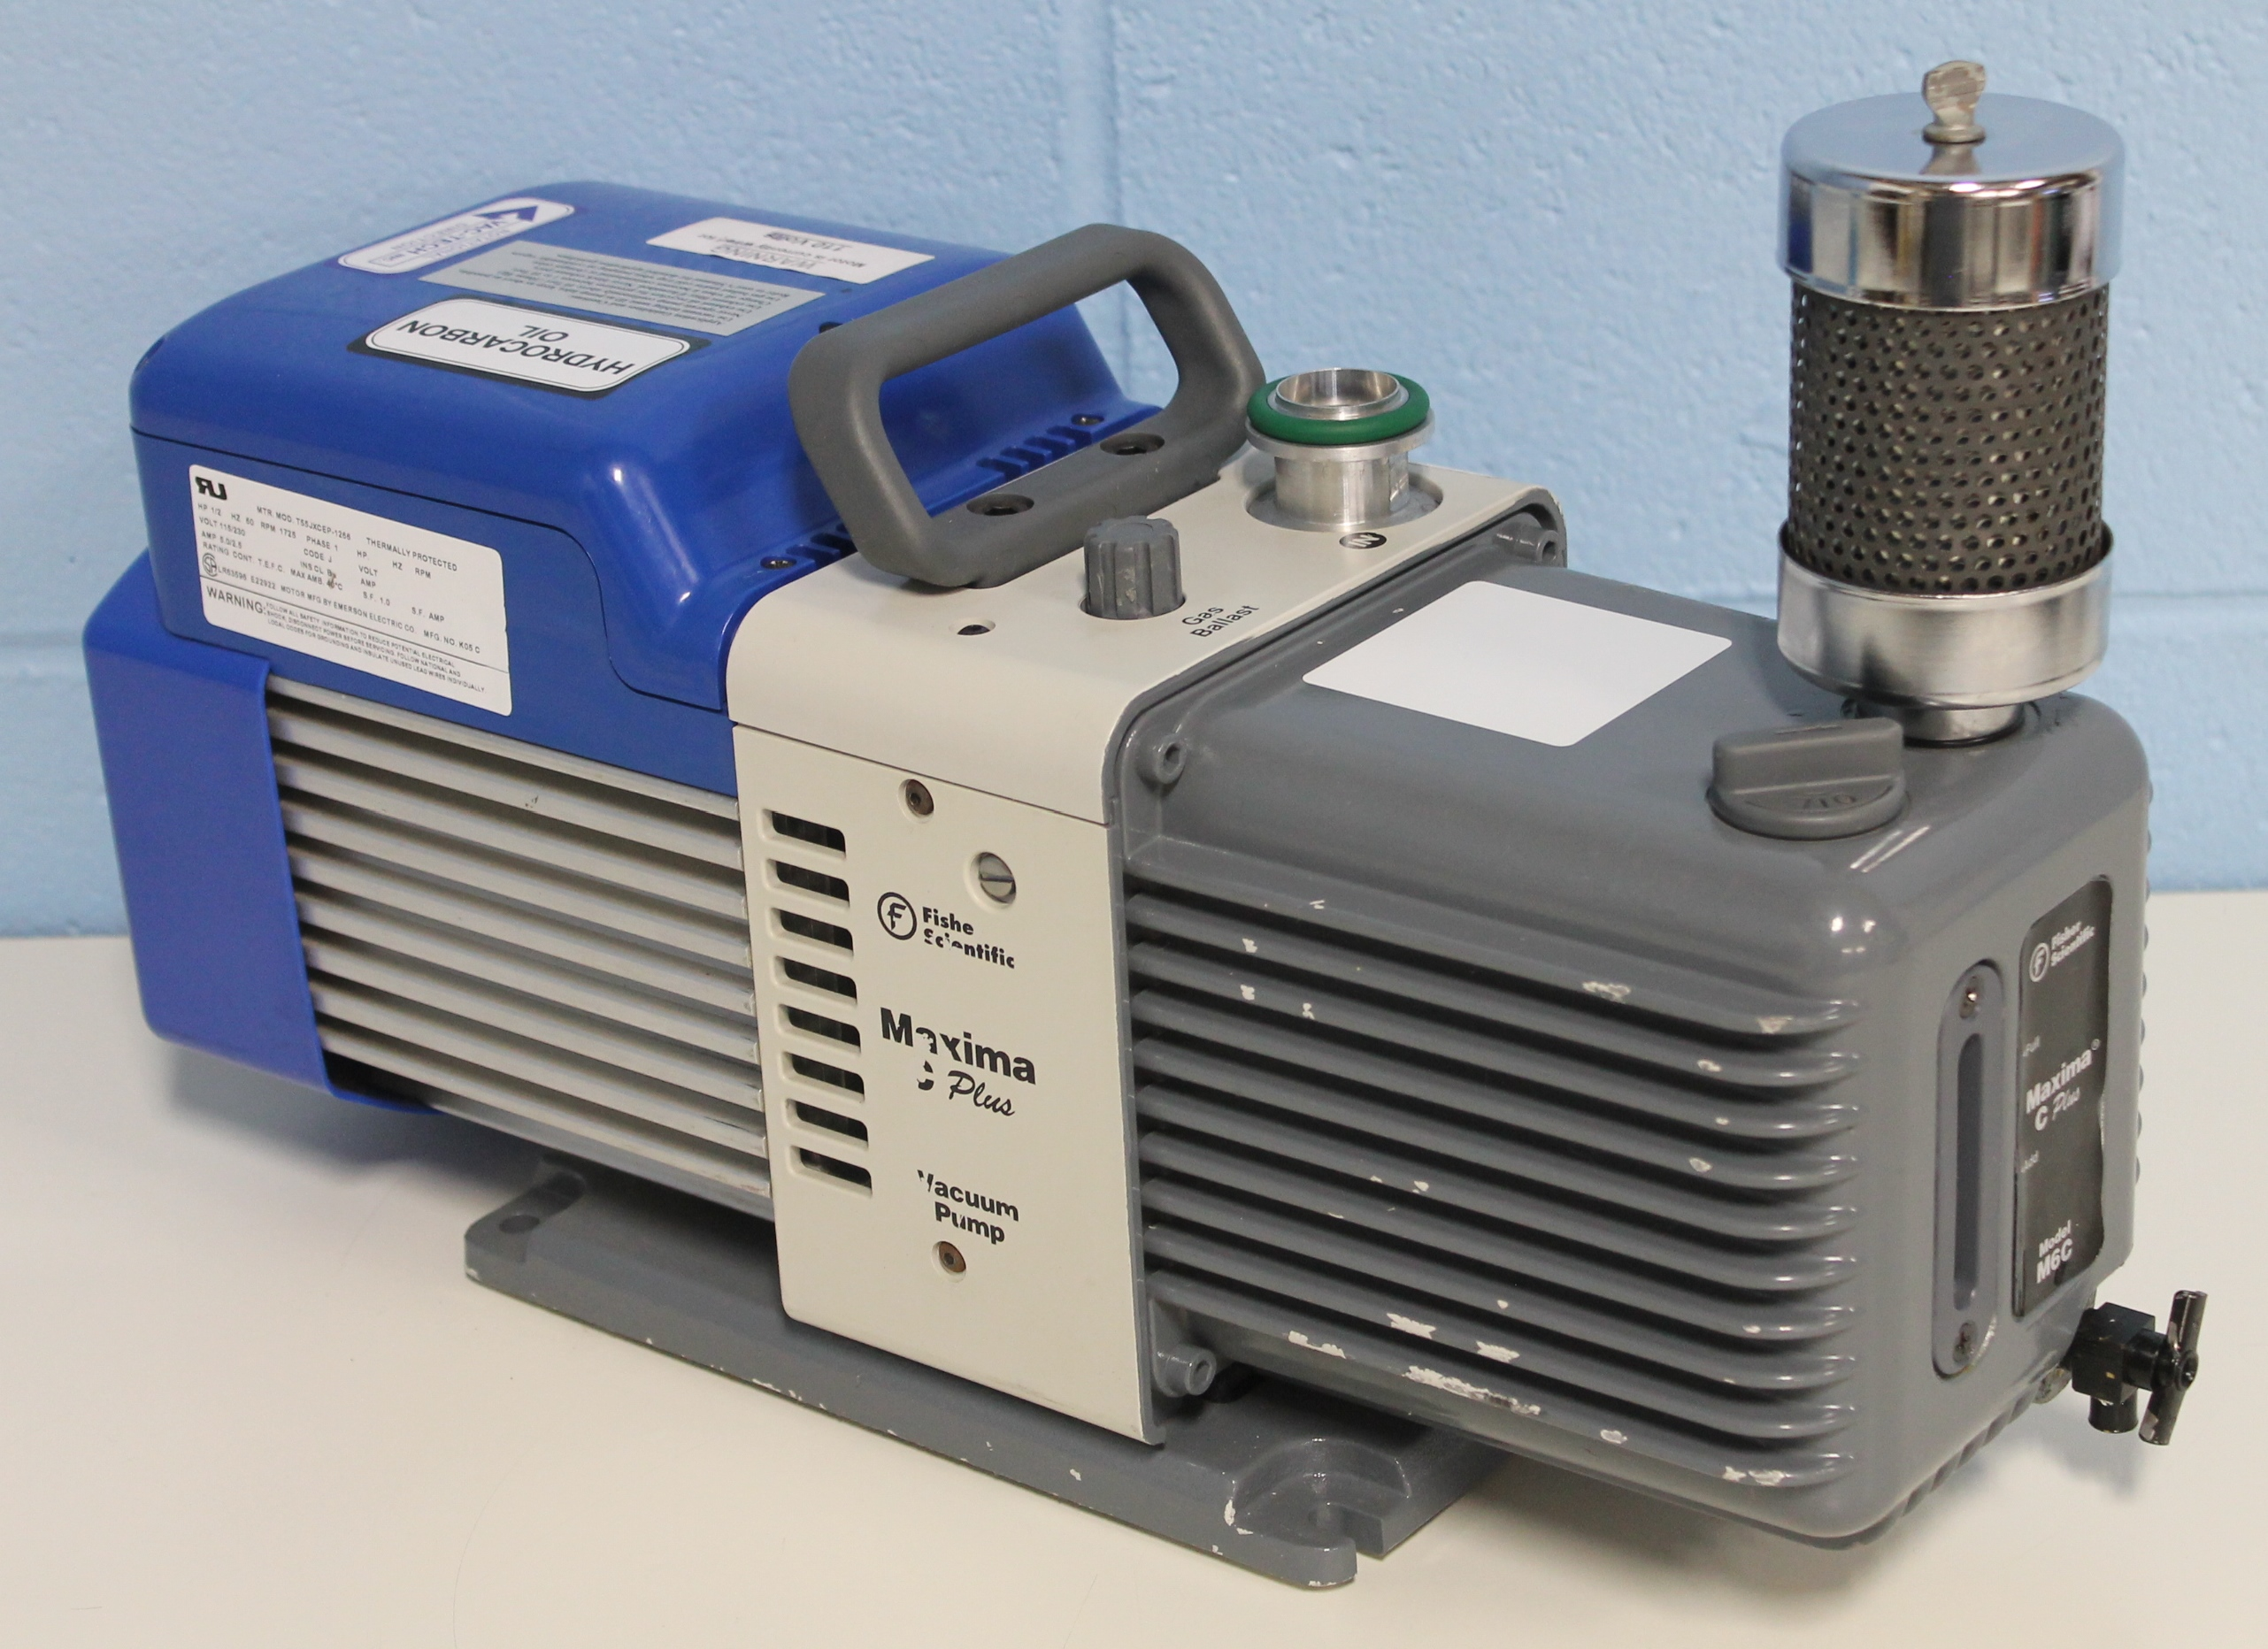 01-257-4A, 01-257-4B, 01-257-4D Synonyms: Severely Hydrotreated Paraffinic  Oil. Ac3850 - Pumps User Manual ...